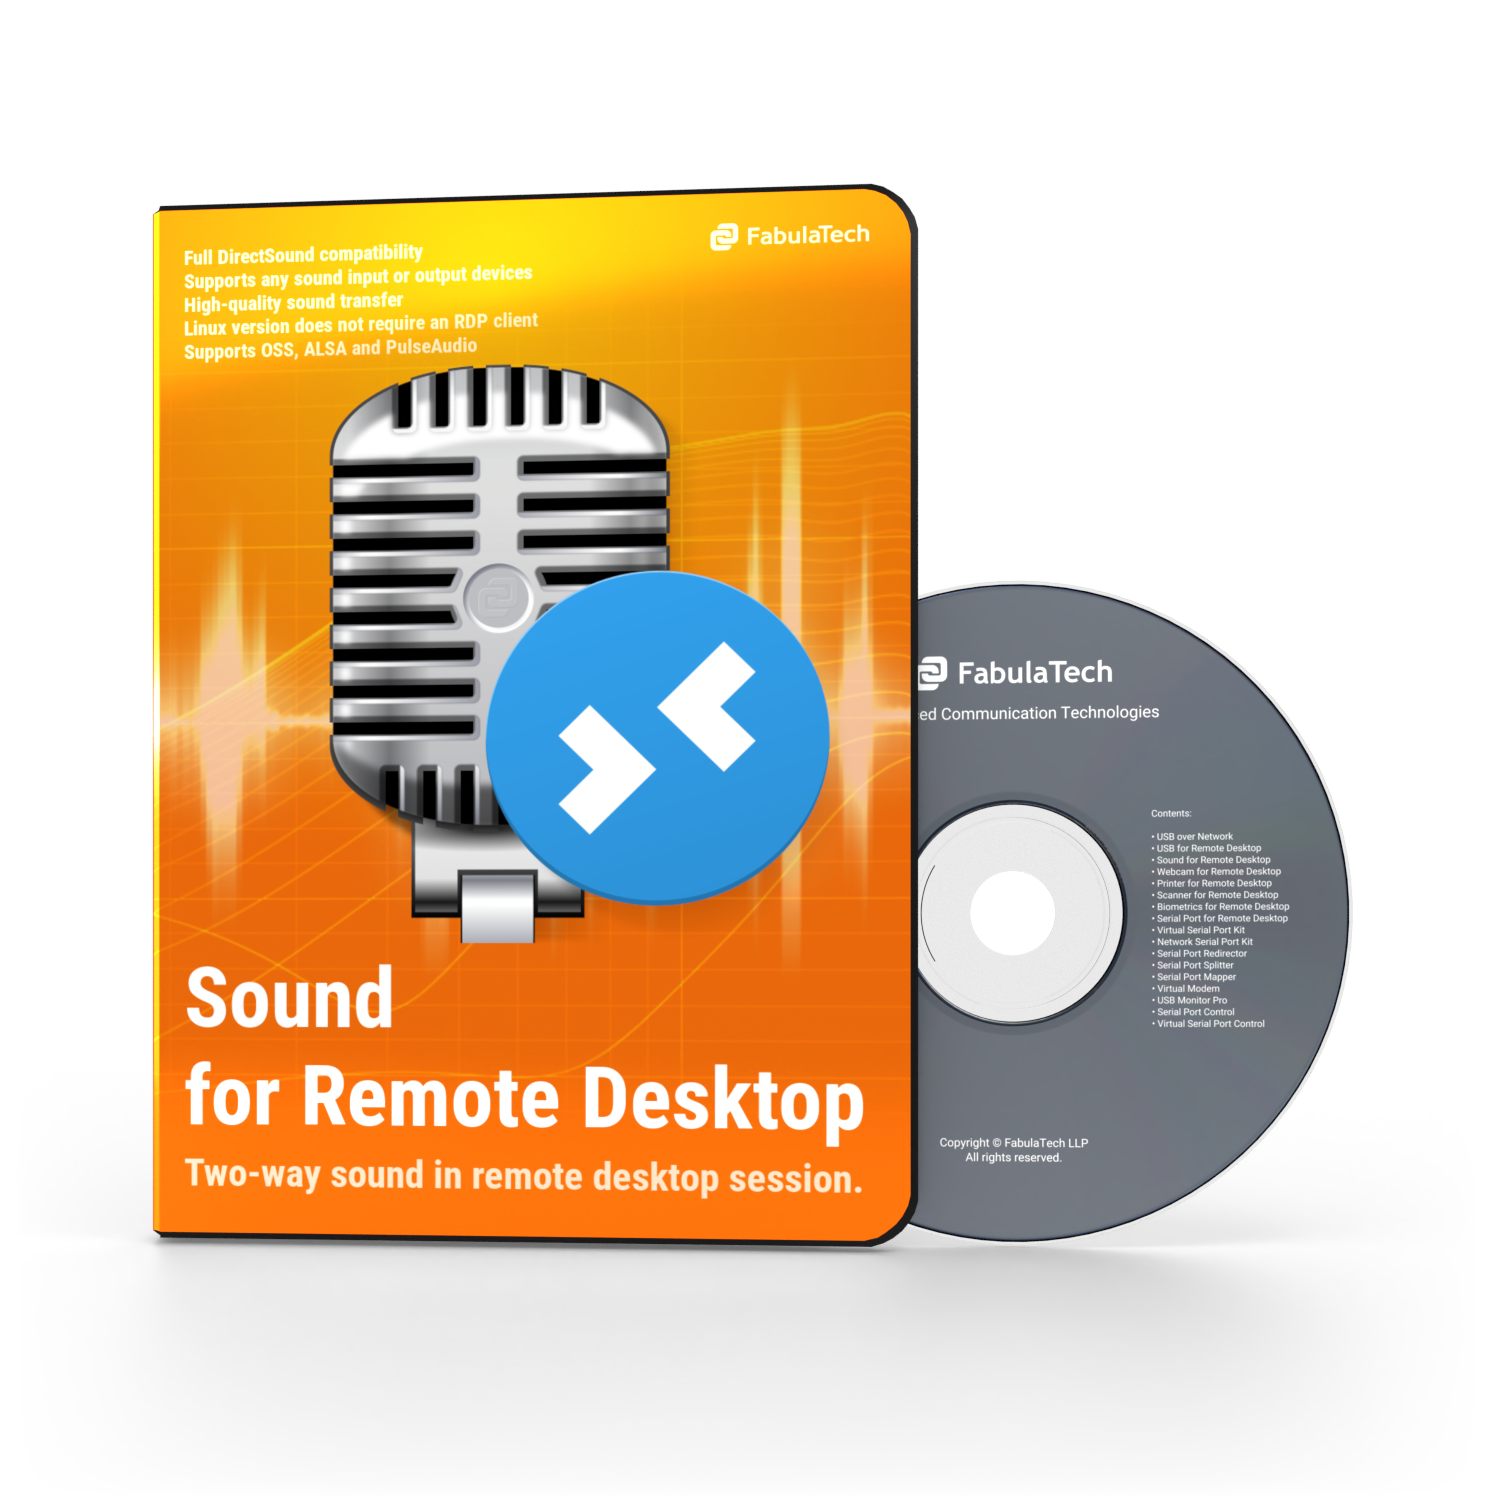 Sound for Remote Desktop - Press Kit